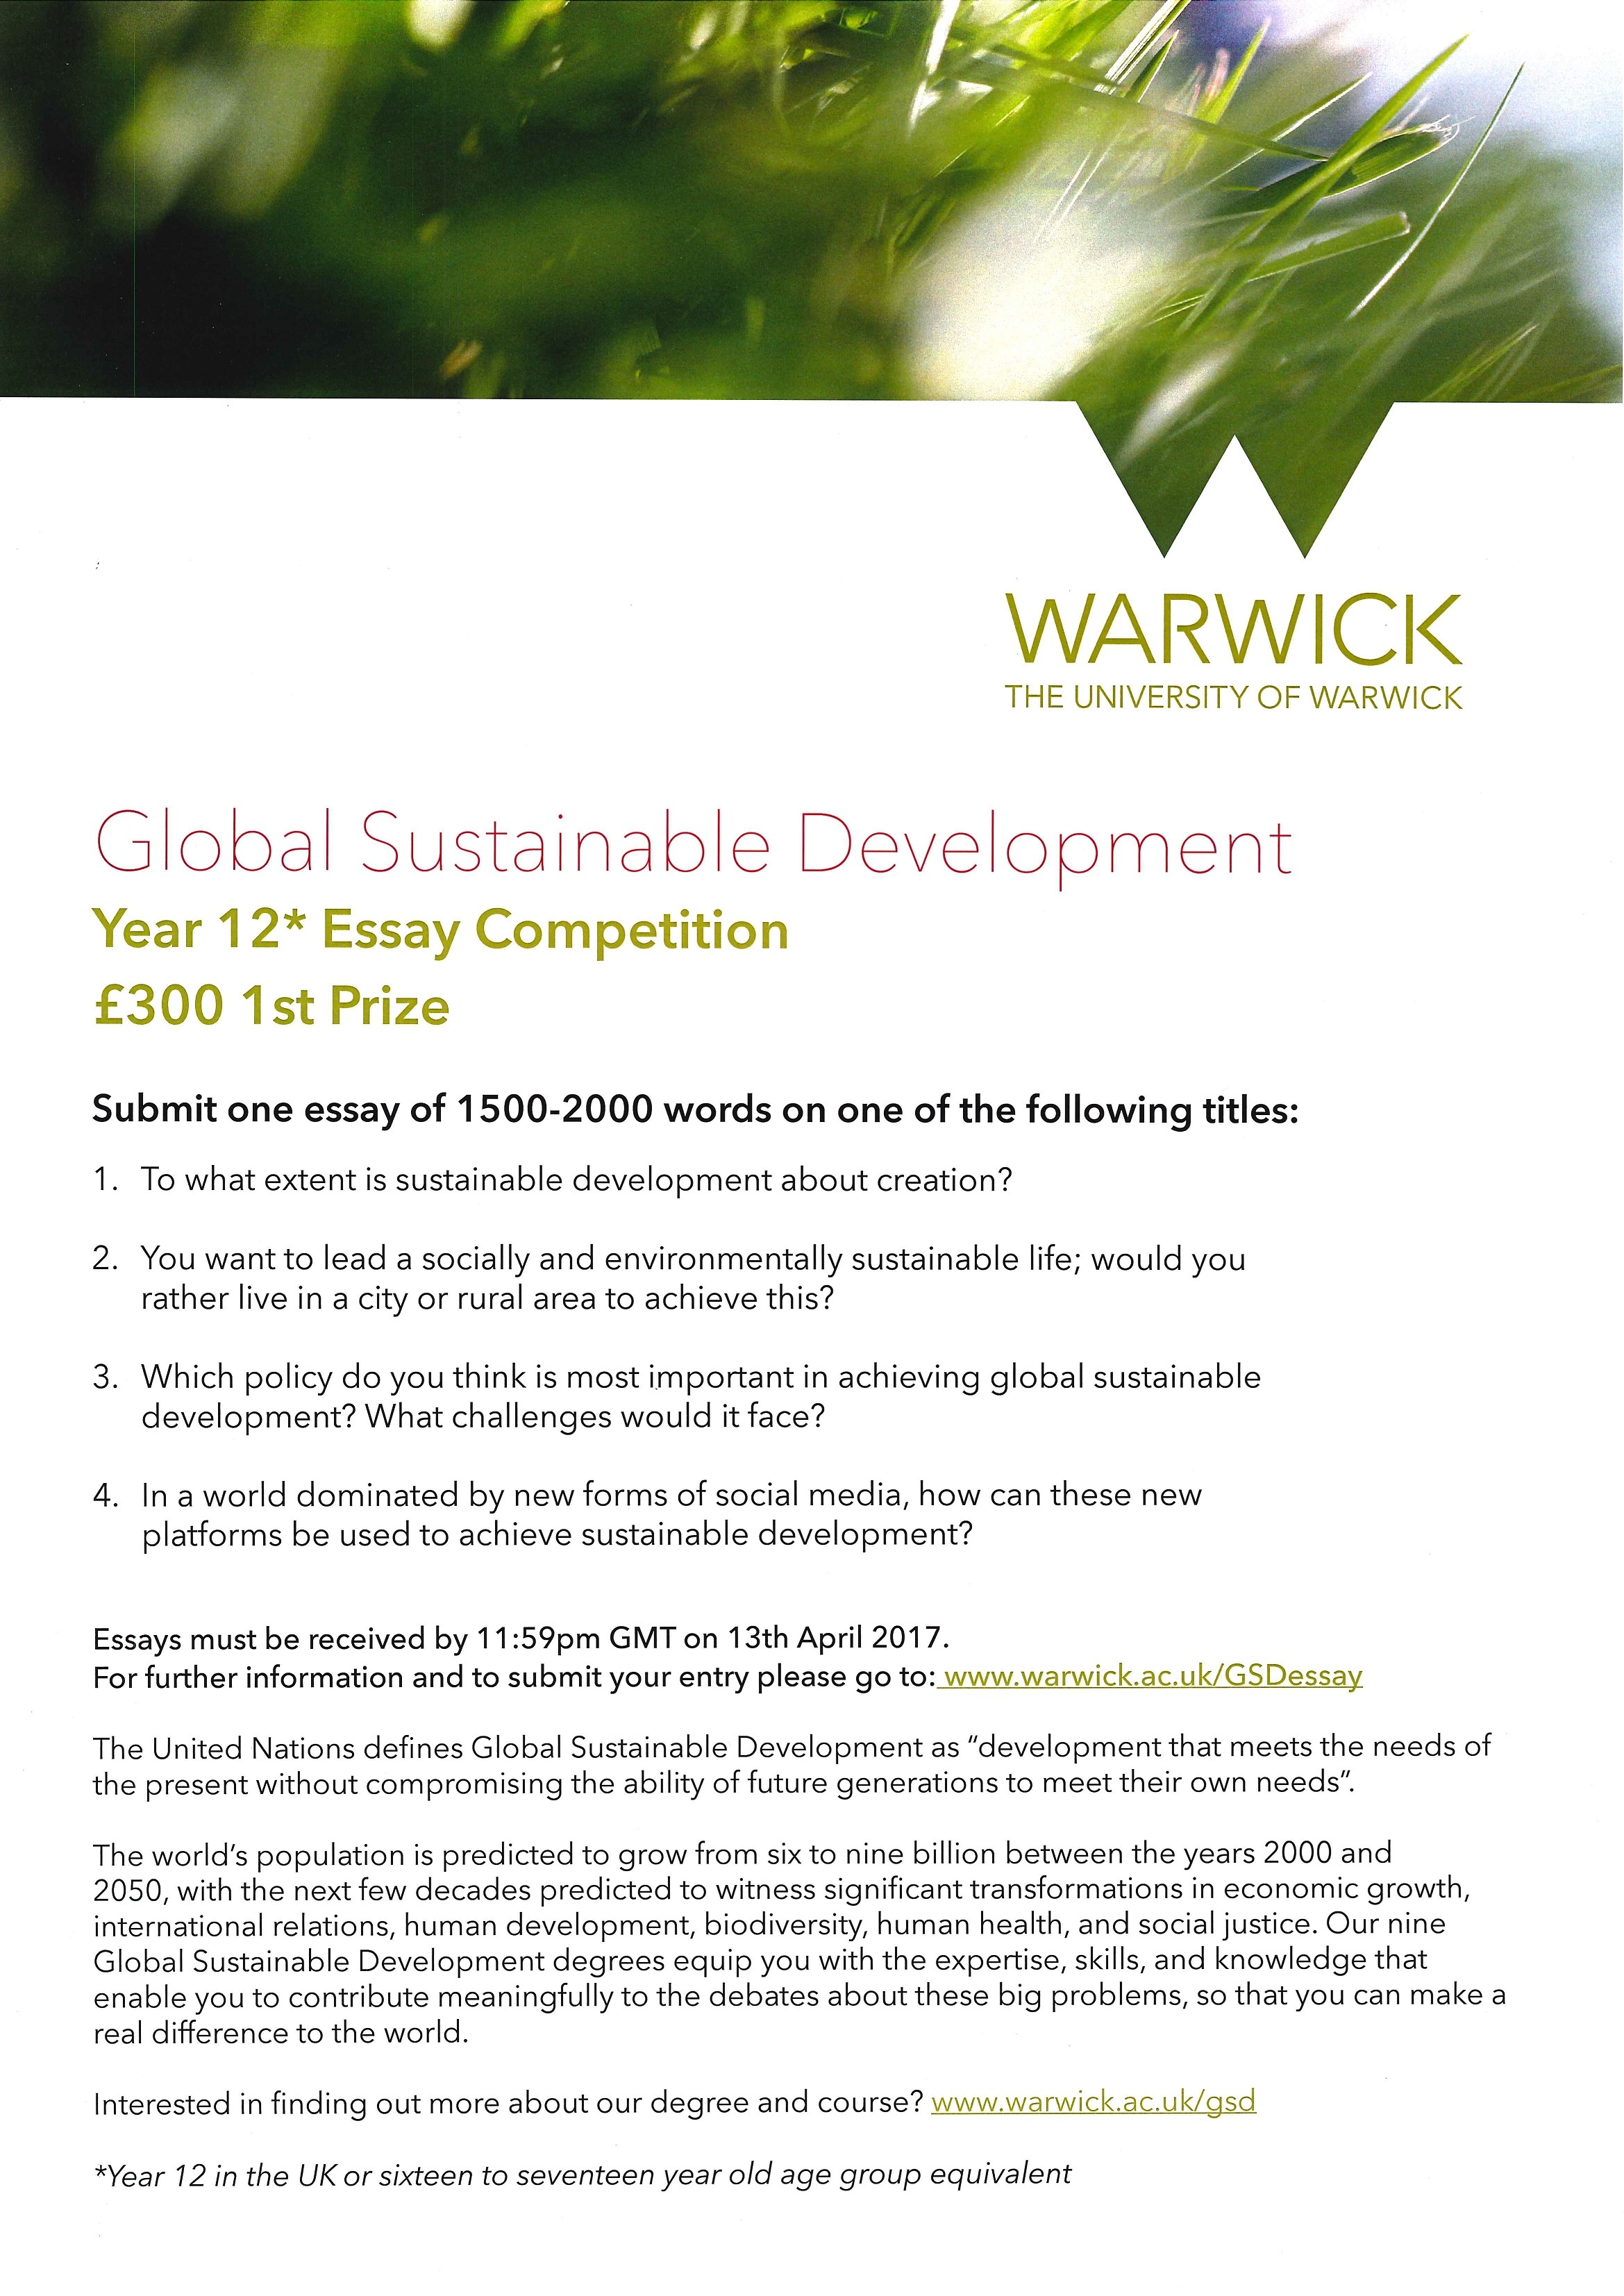 Essays For Money Global Sustainable Development Year  Ib Essay Competition From The  University Of Warwick  St Clares Careers Classroom Management Essay also Essay On My Favourite Food Global Sustainable Development Year  Ib Essay Competition From  Convincing Essay